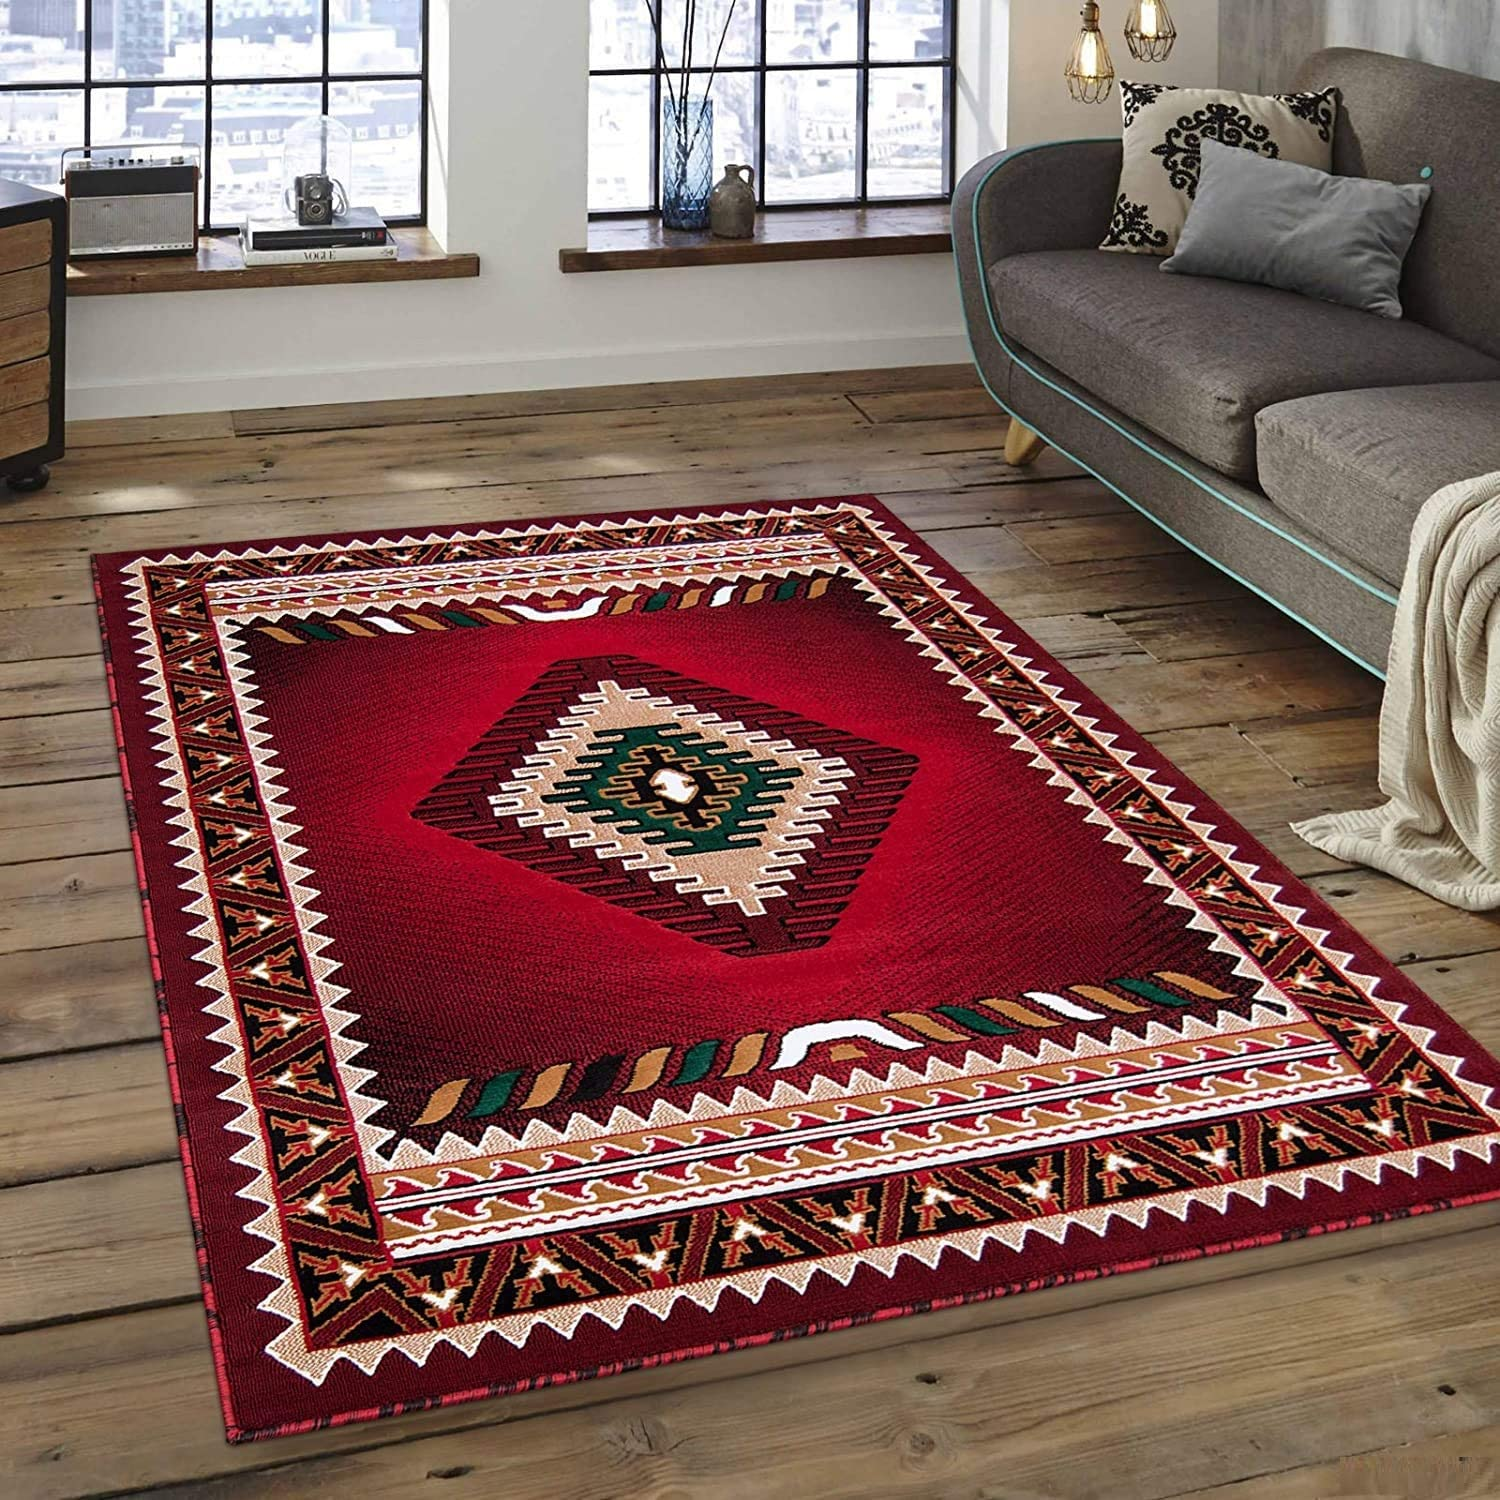 Western Navajo Many popular brands Aztec Native American Max 47% OFF Red Carpet Rug Area Feet 5